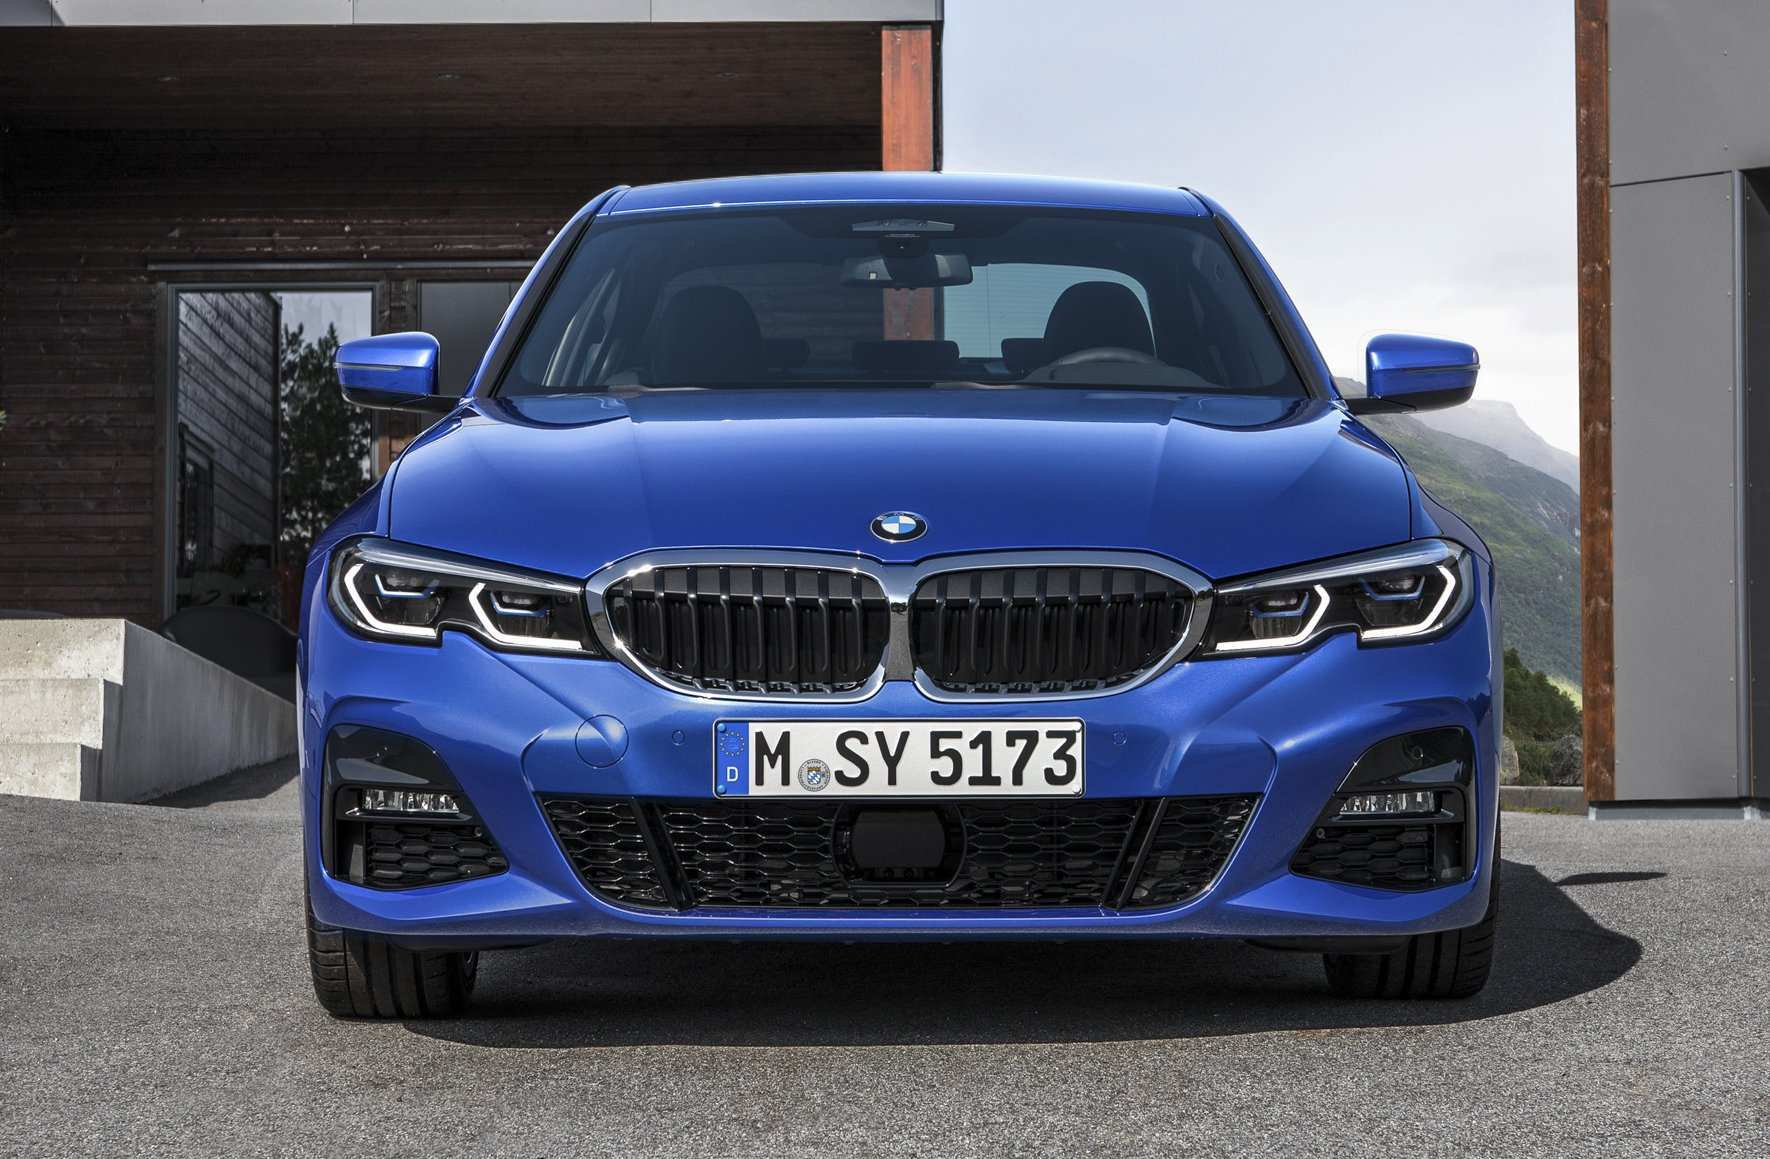 79 The Best 2020 BMW 3 Series Brings Exterior And Interior